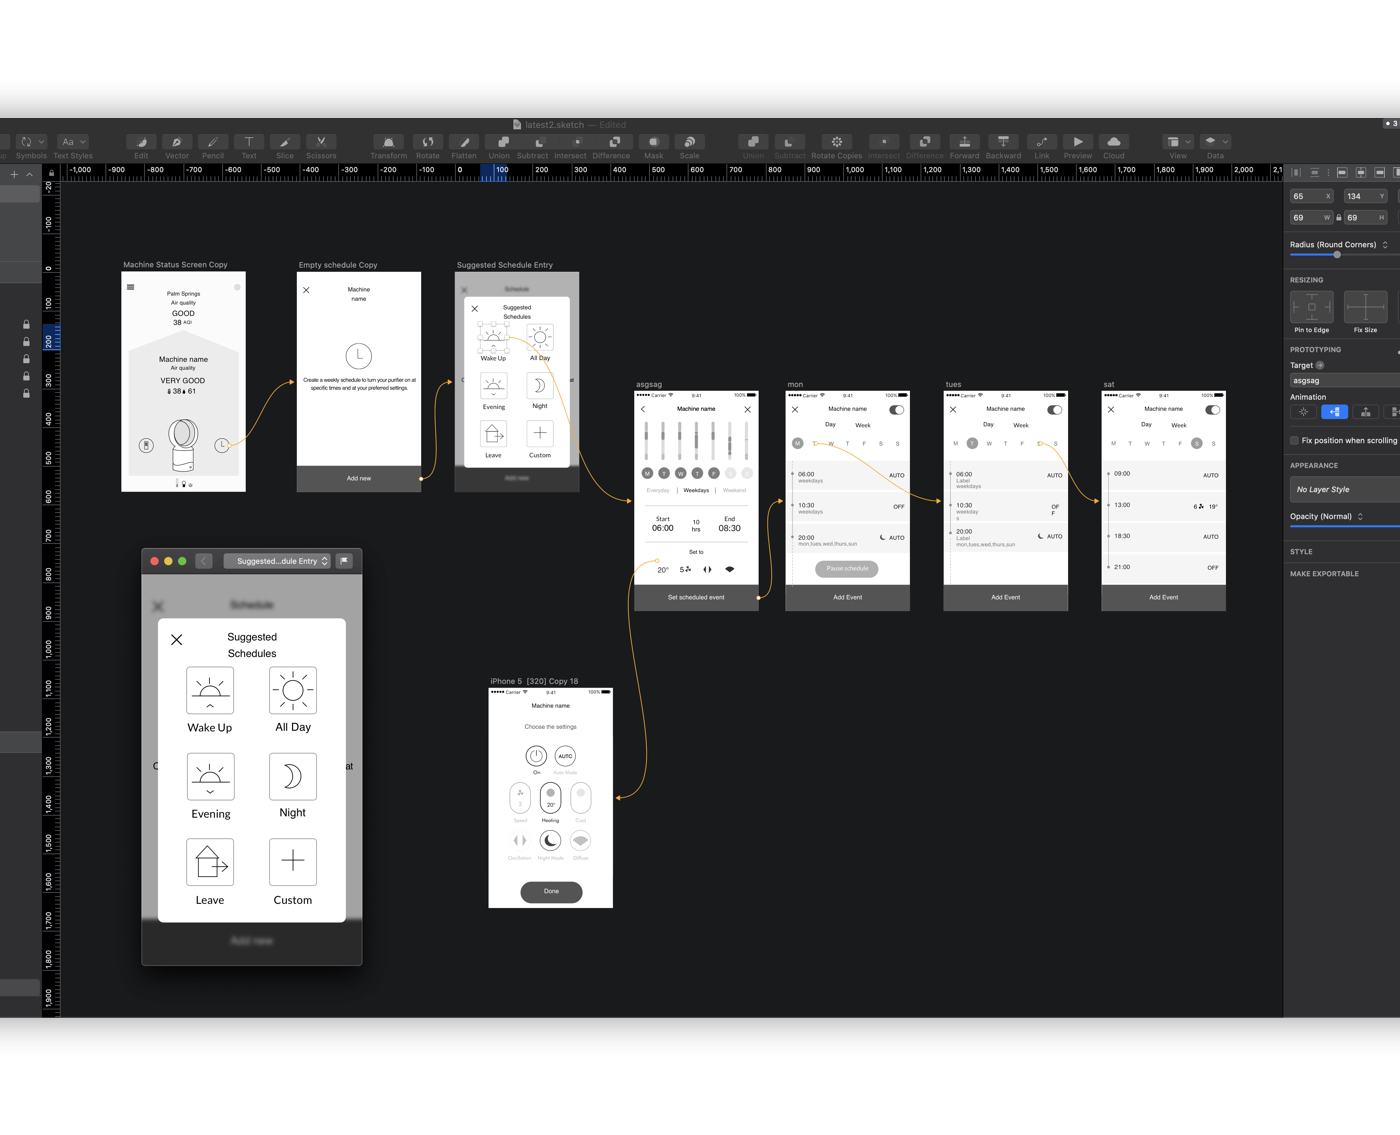 Dyson schedule prototyping